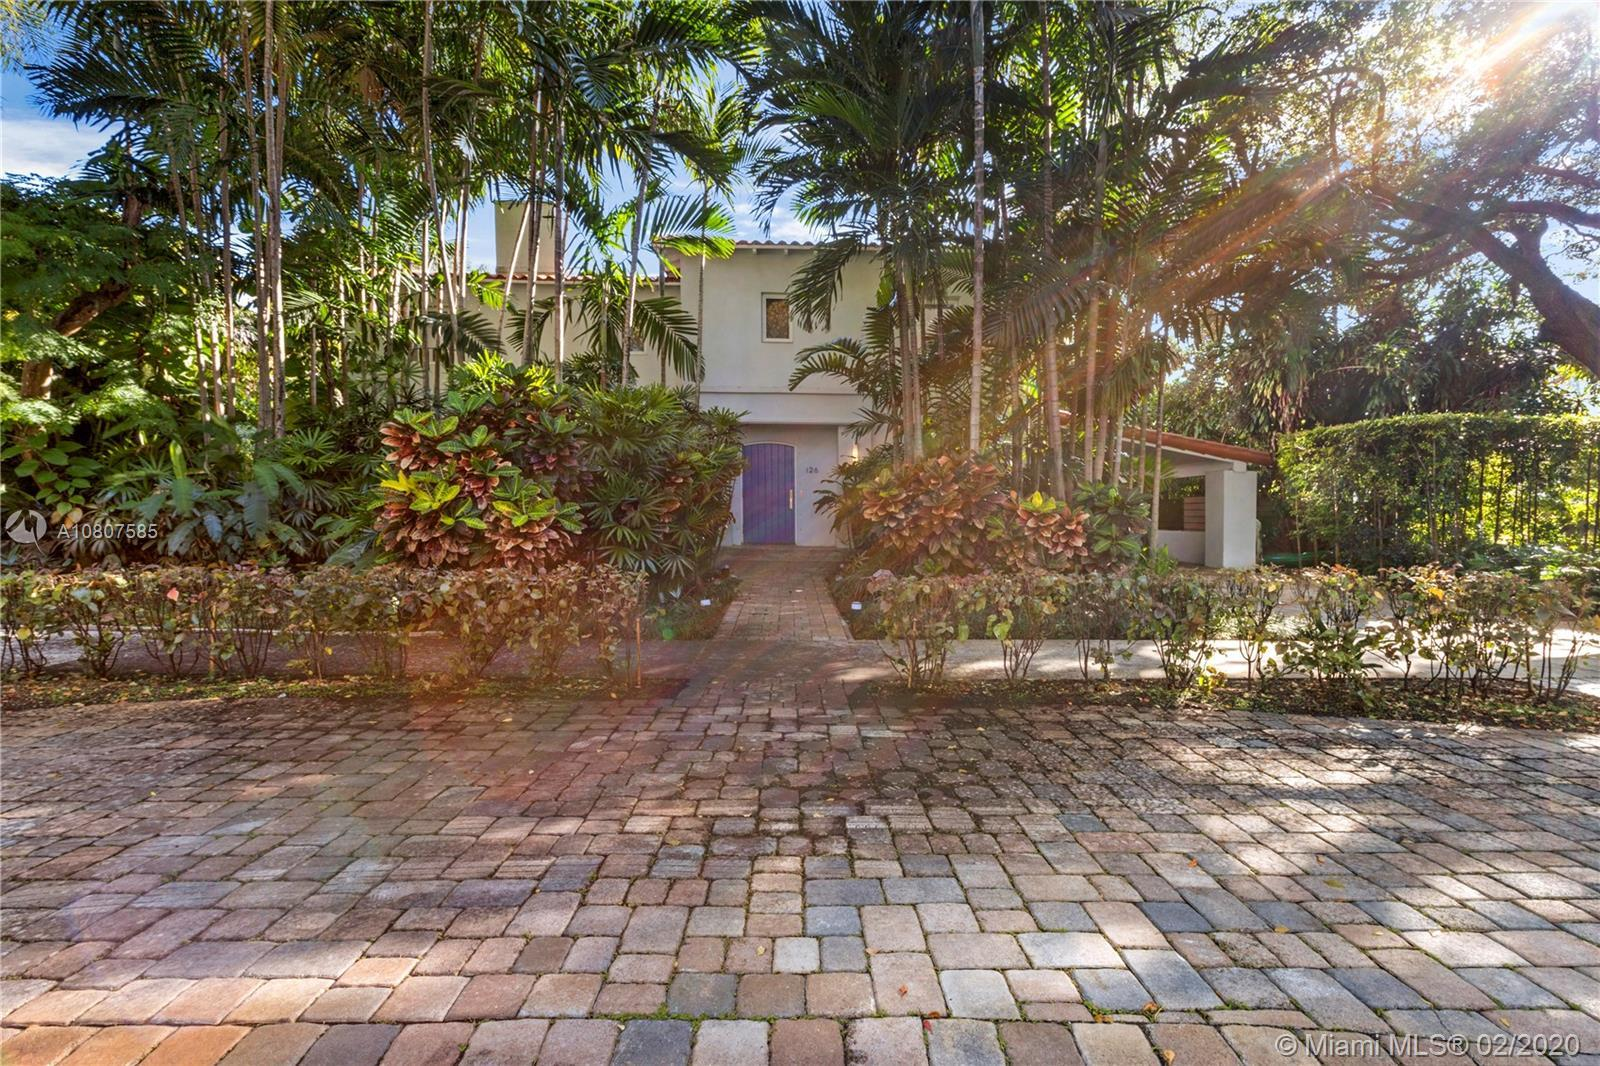 Beautifully renovated 1932 Mediterranean 2 story home in Miami Shores. Over-sized lot with mature la